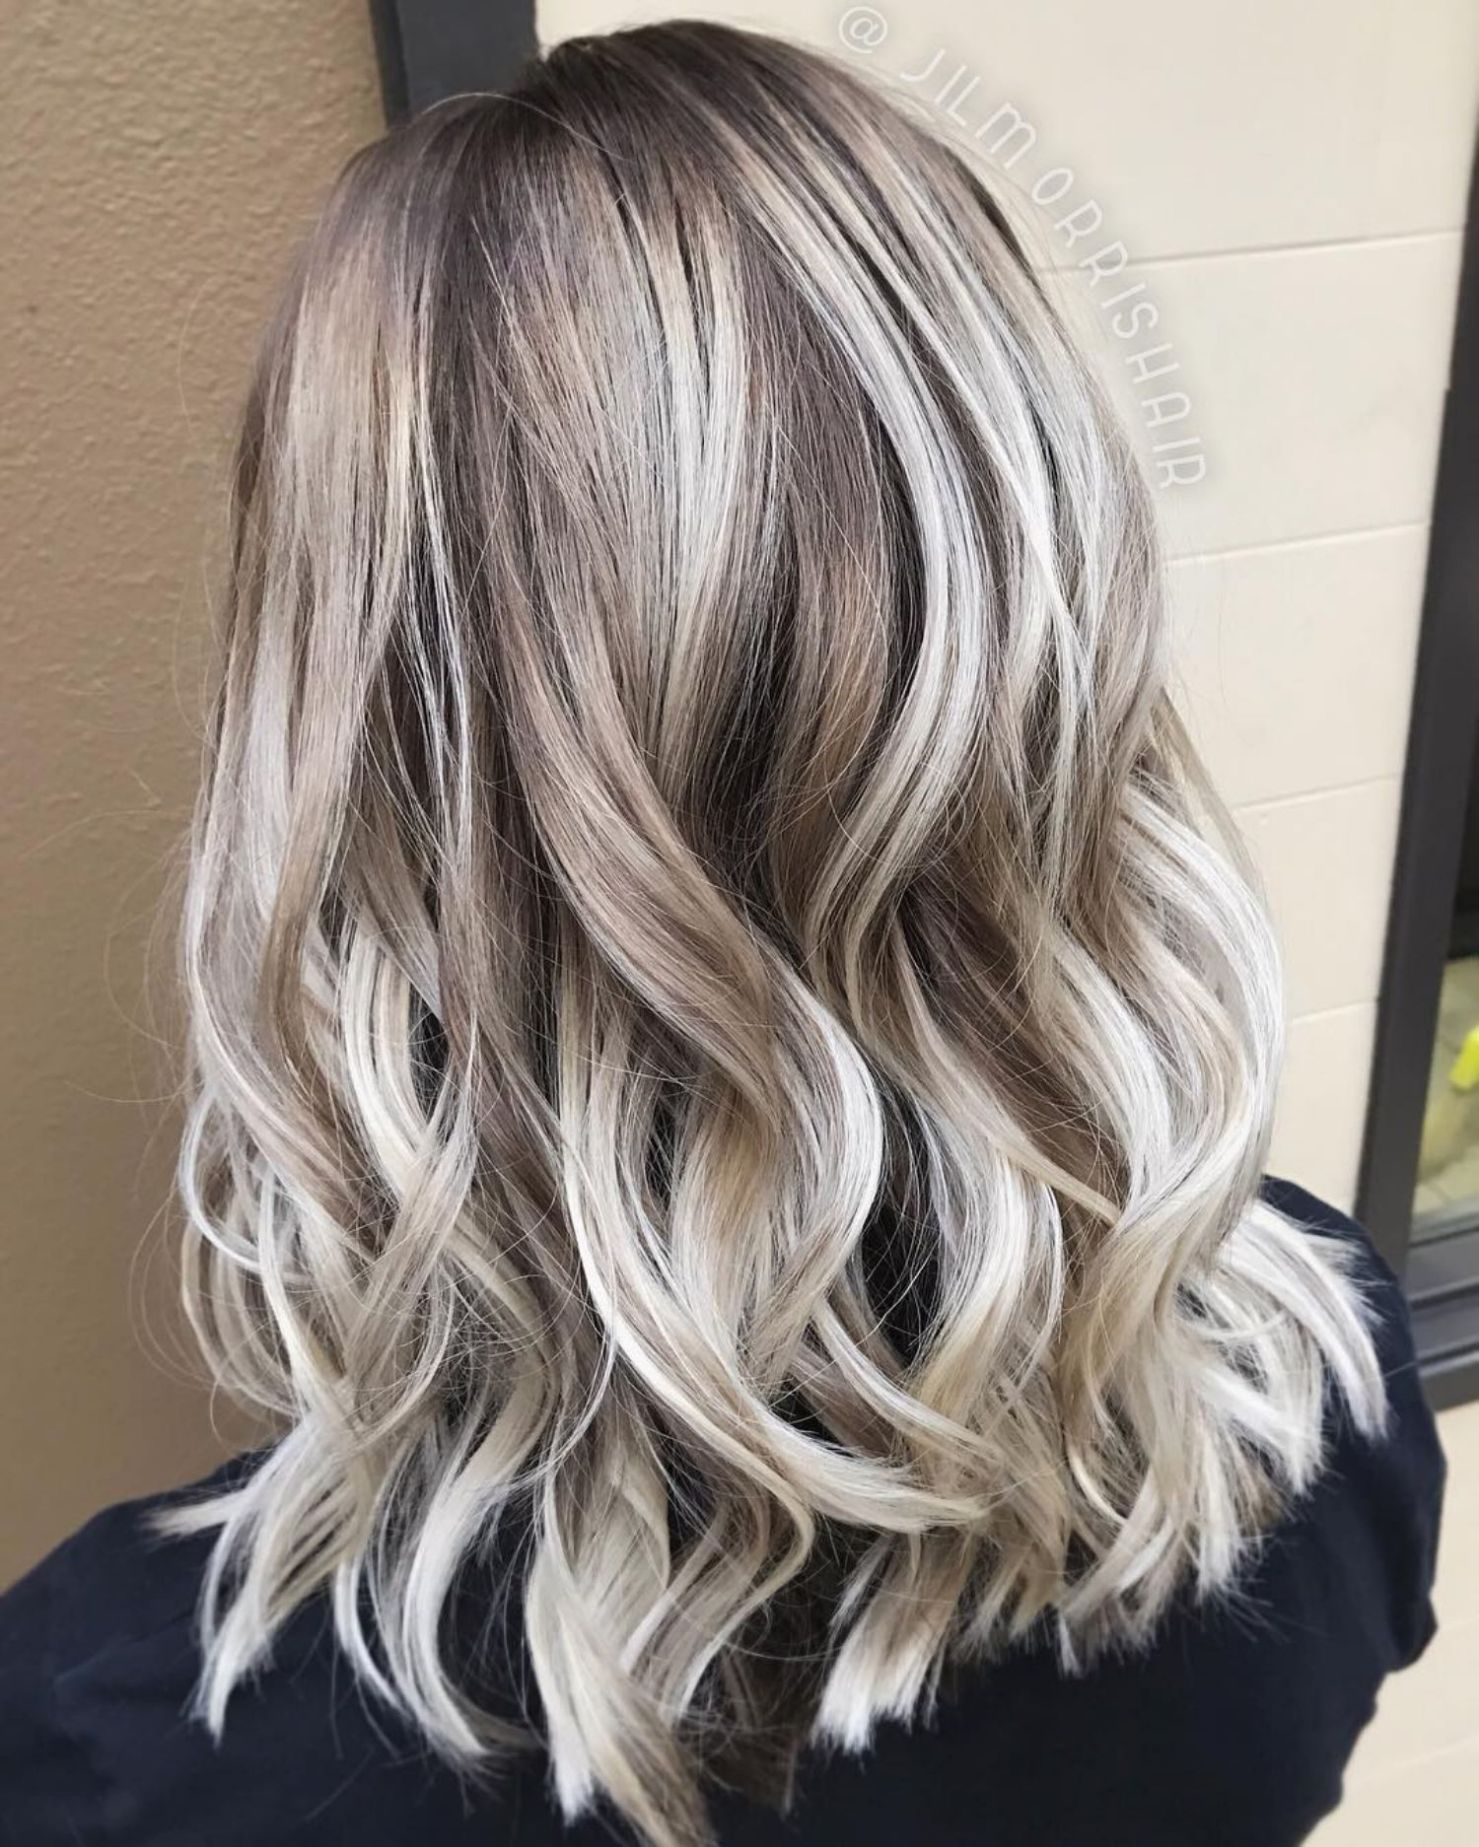 60 Shades Of Grey Silver And White Highlights For Eternal Youth Ash Blonde Balayage Brown Hair With Silver Highlights Brown Blonde Hair